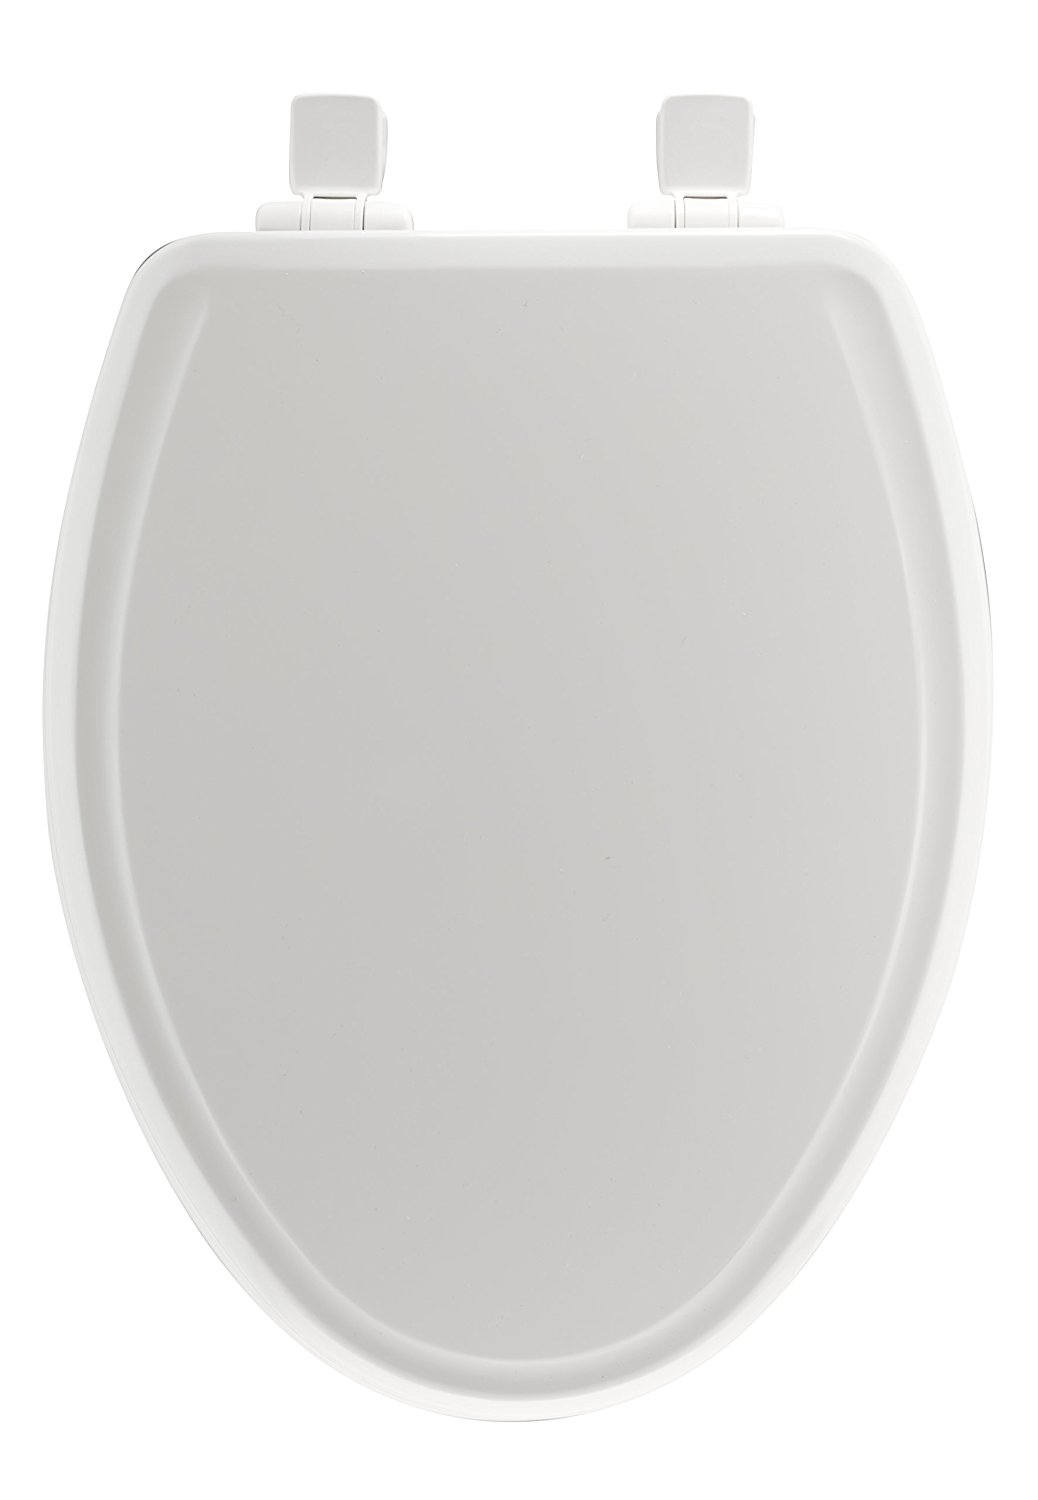 Mayfair Slow-Close Molded Wood Toilet Seat